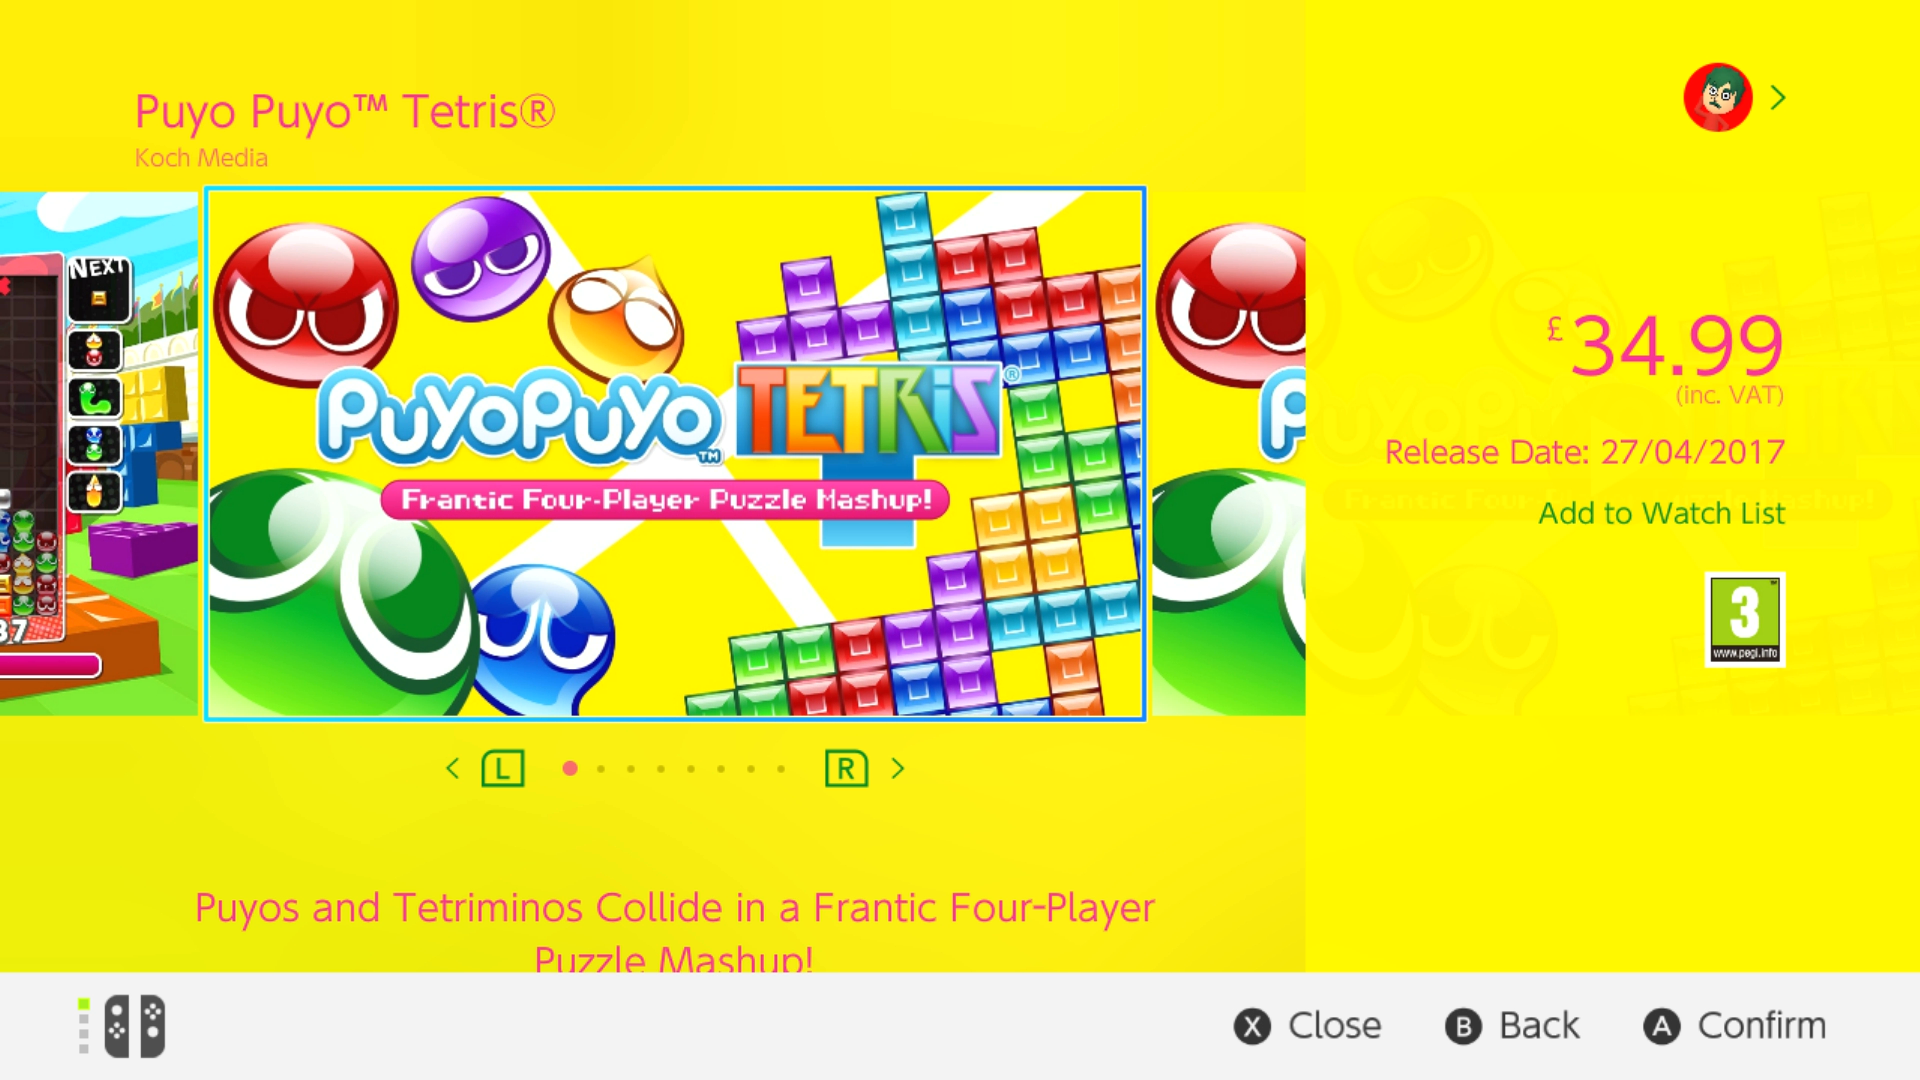 Puyo Puyo Tetris Screenshot 2017-04-11 10-07-58